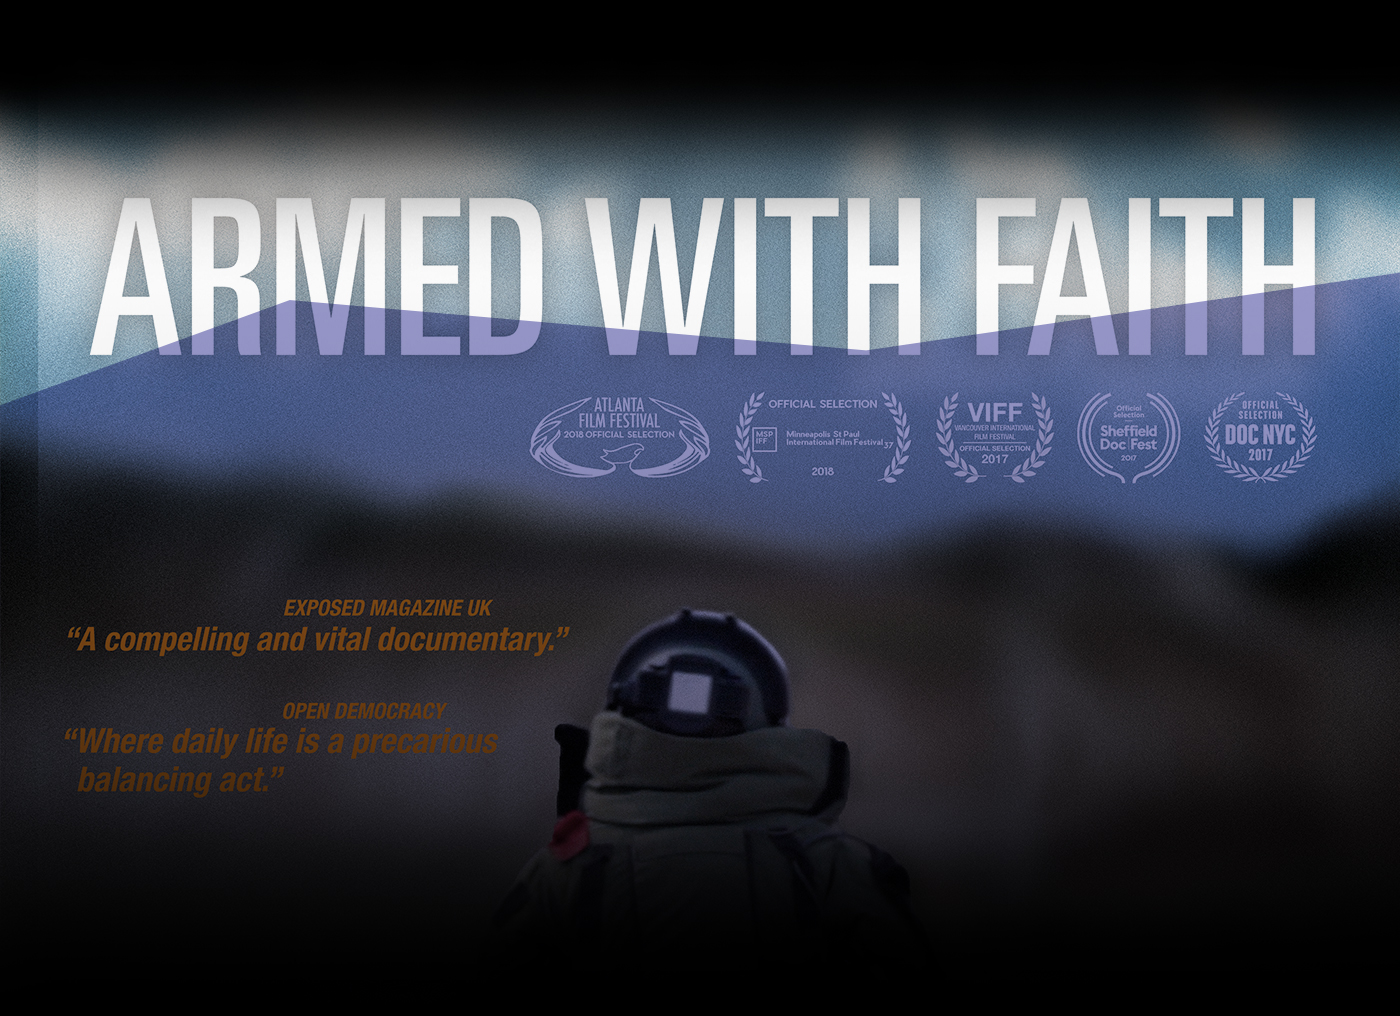 Armed with Faith Film